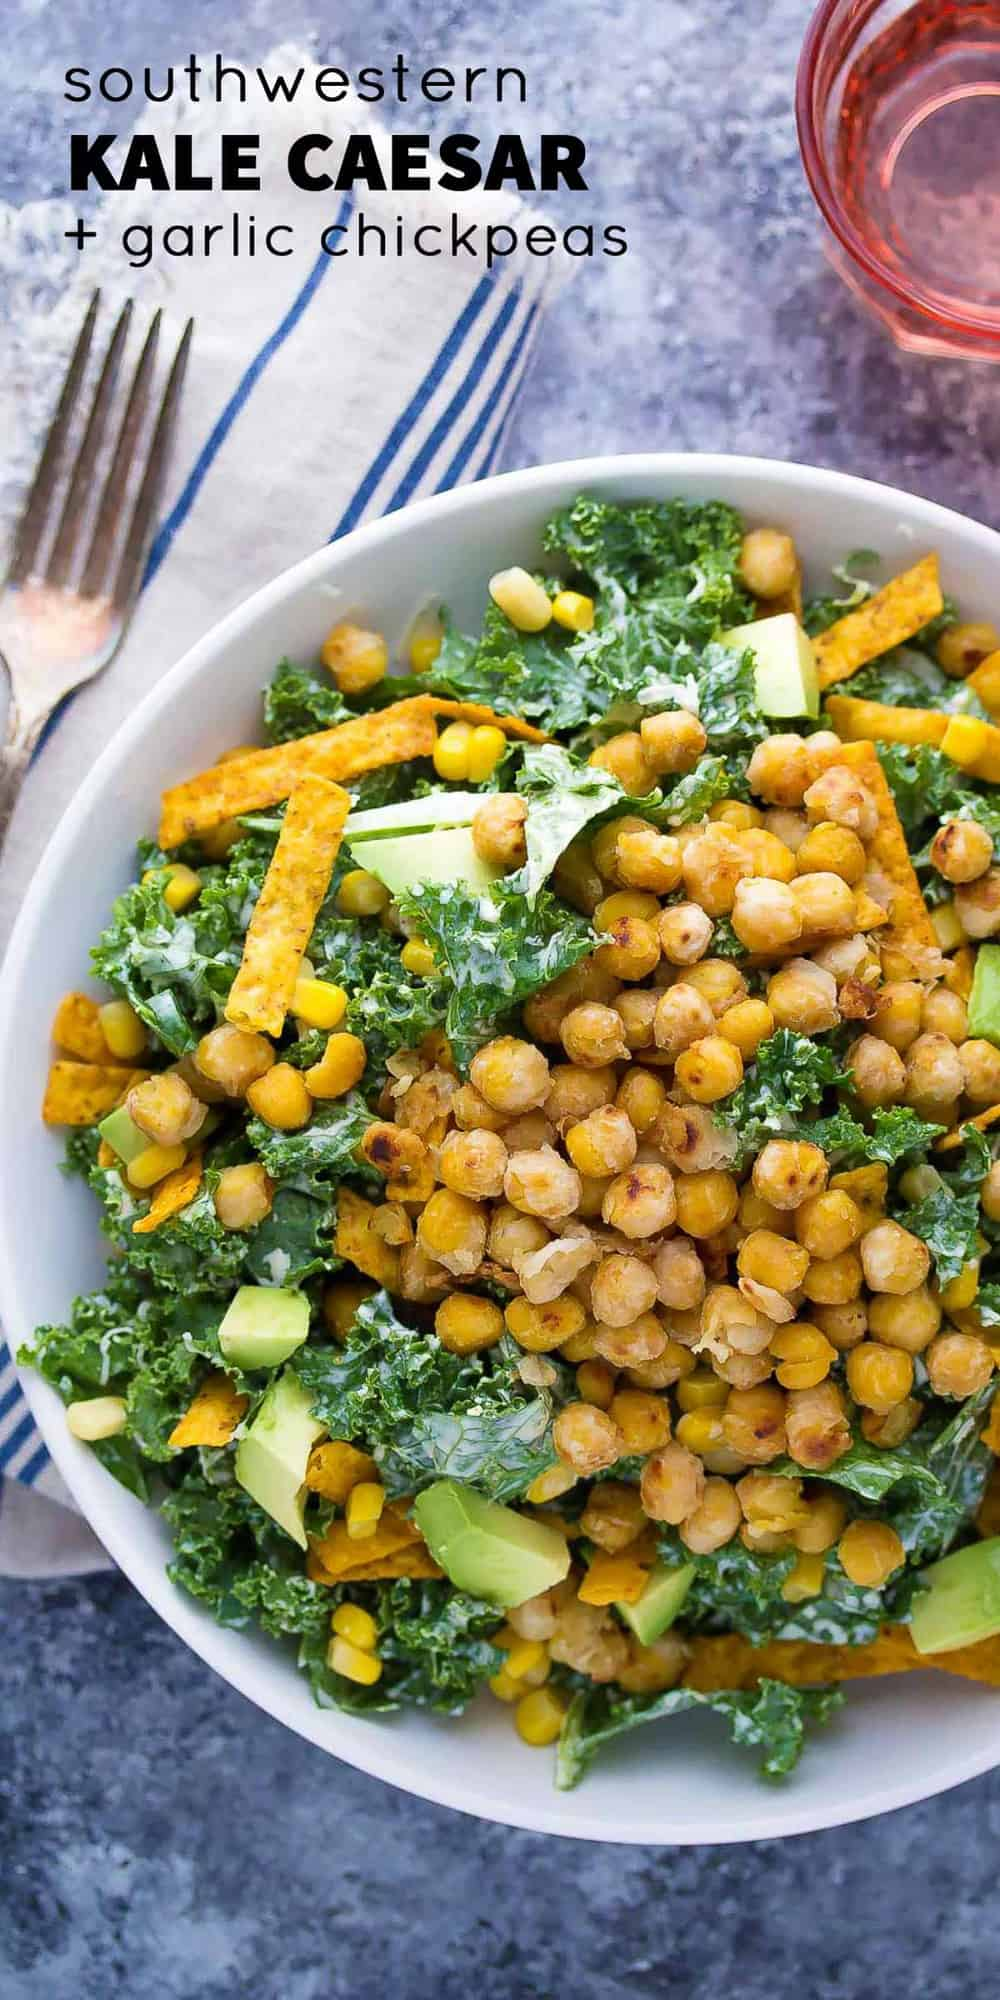 Southwestern Kale Chickpea Salad with Greek Yogurt Caesar Dressing, an easy 30 minute dinner recipe!